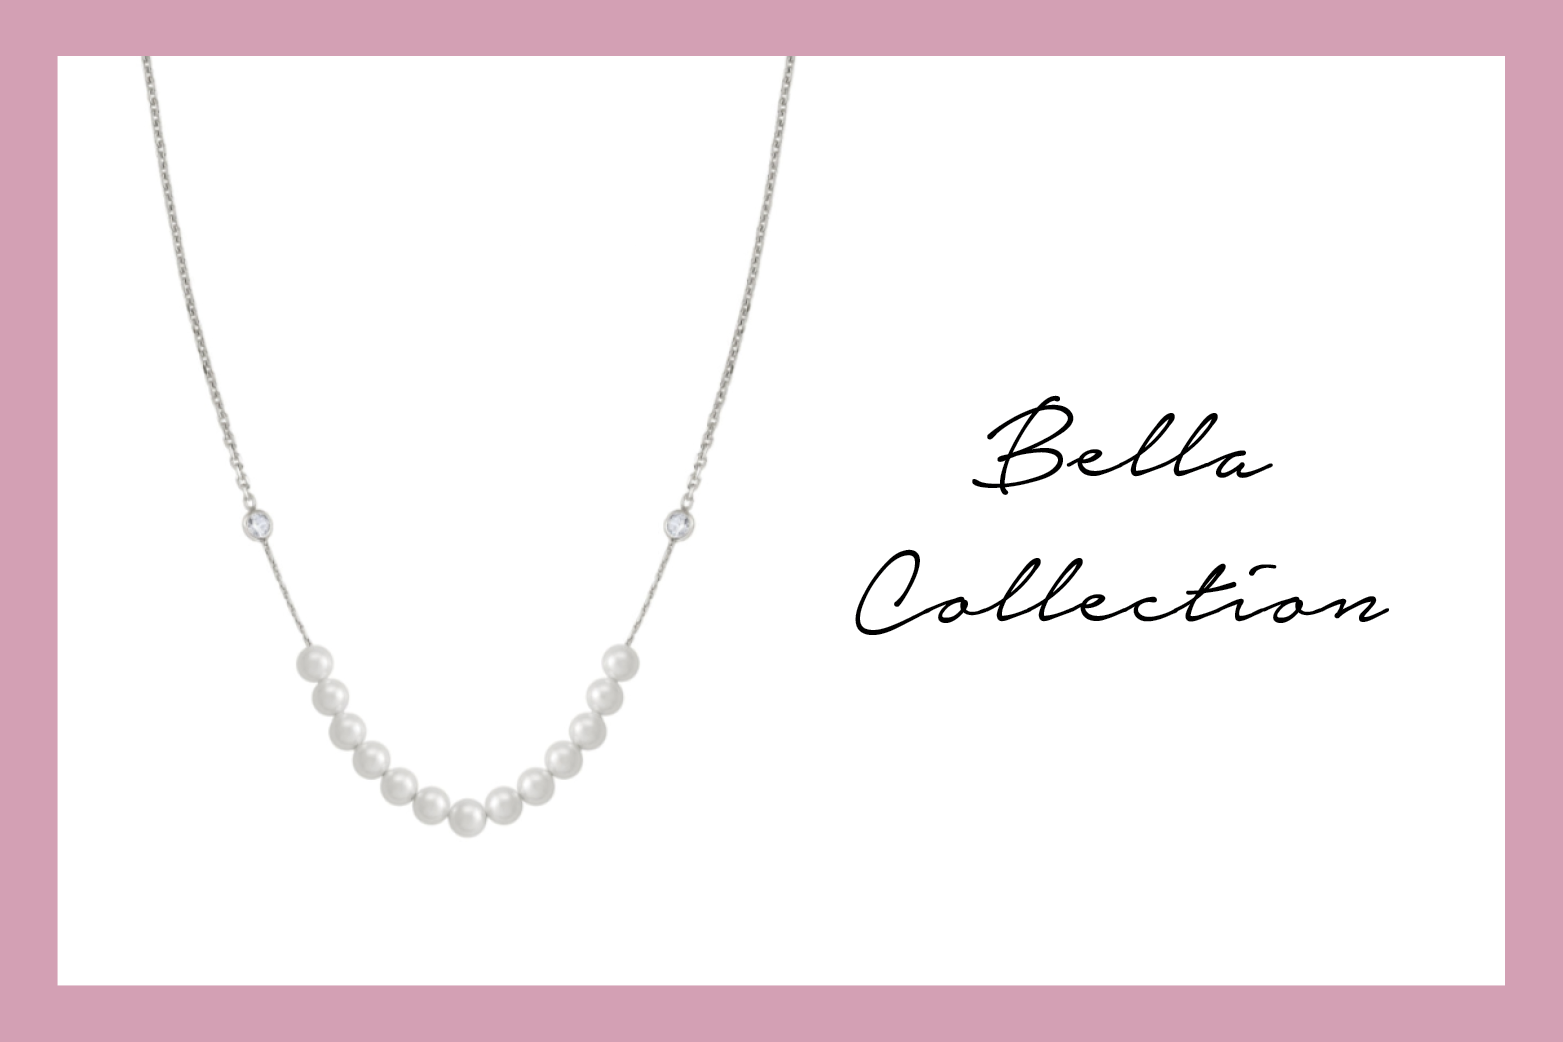 Bella Moonlight Necklace with pearls